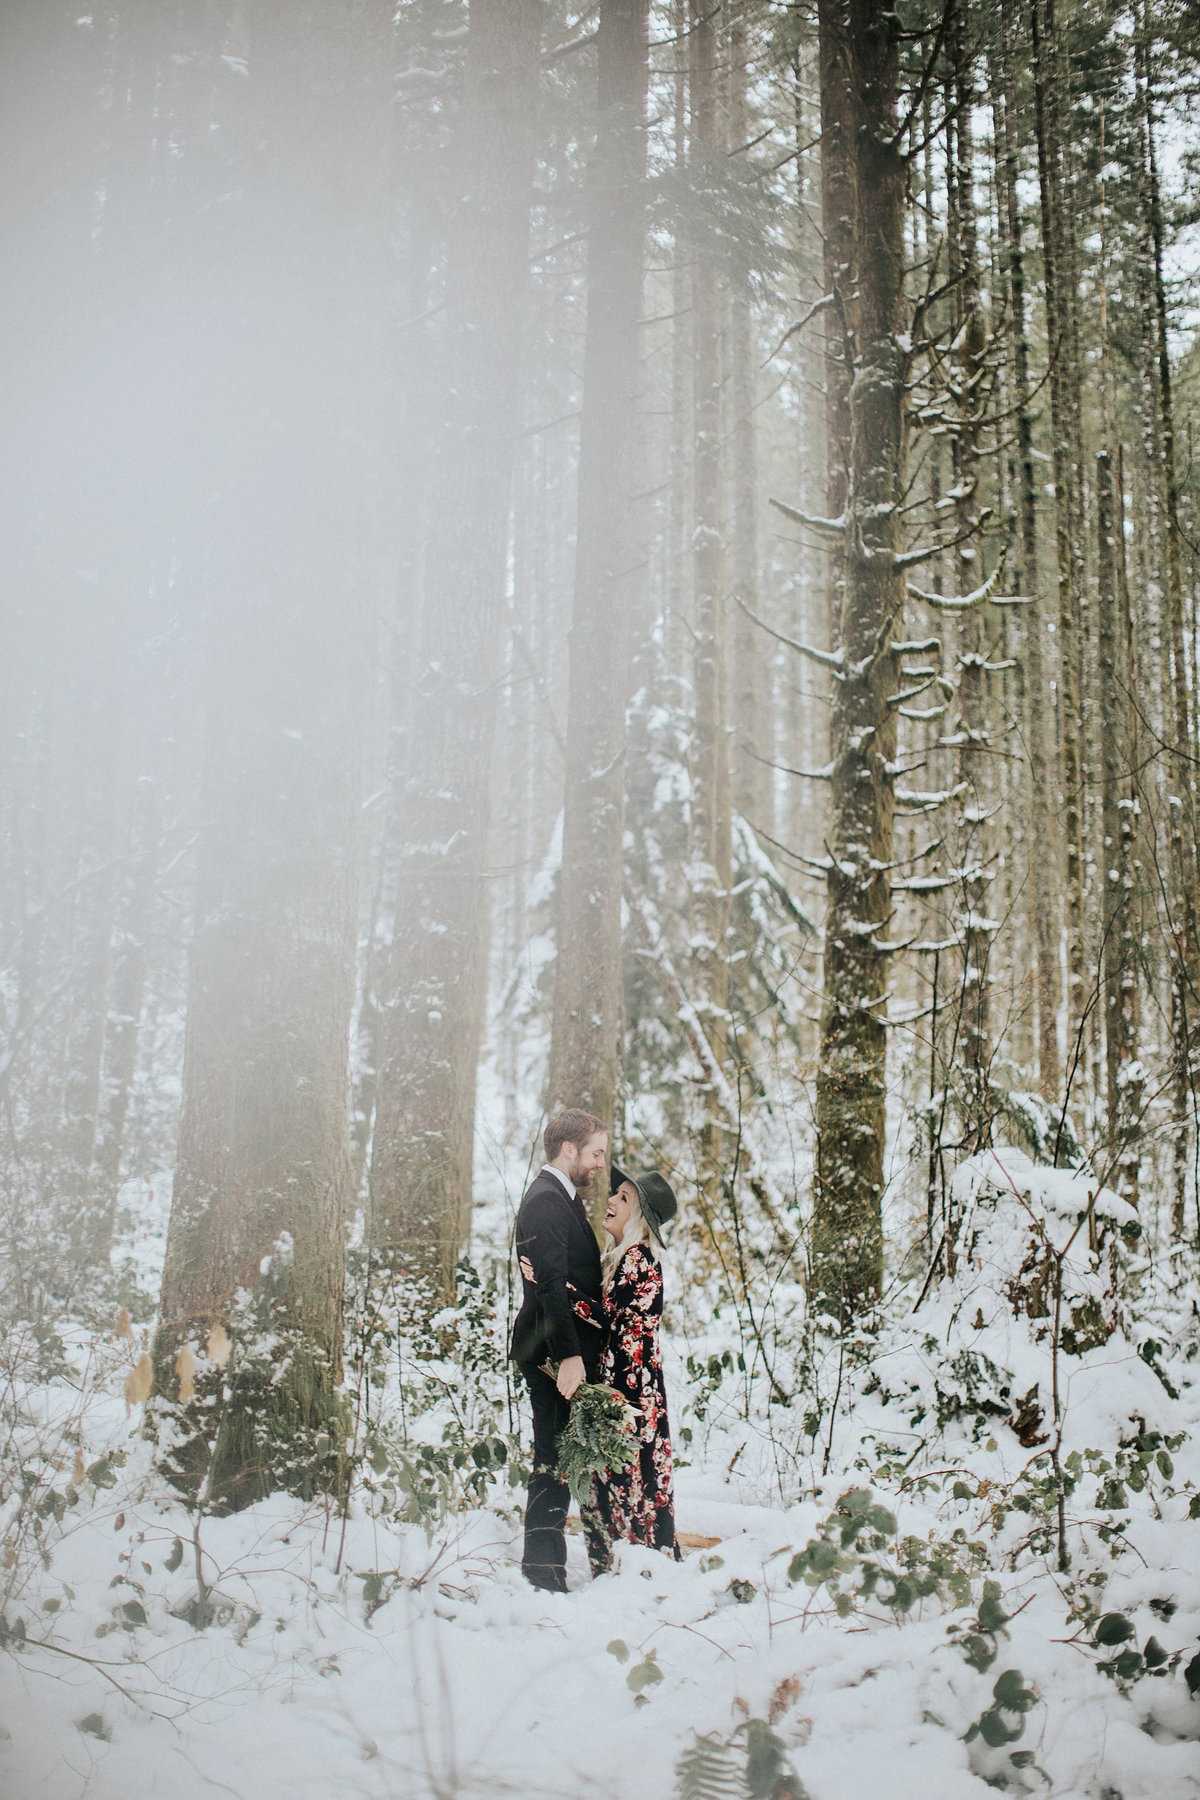 Tarah Elise Photography - Minnesota Wedding and Portrait Photography2